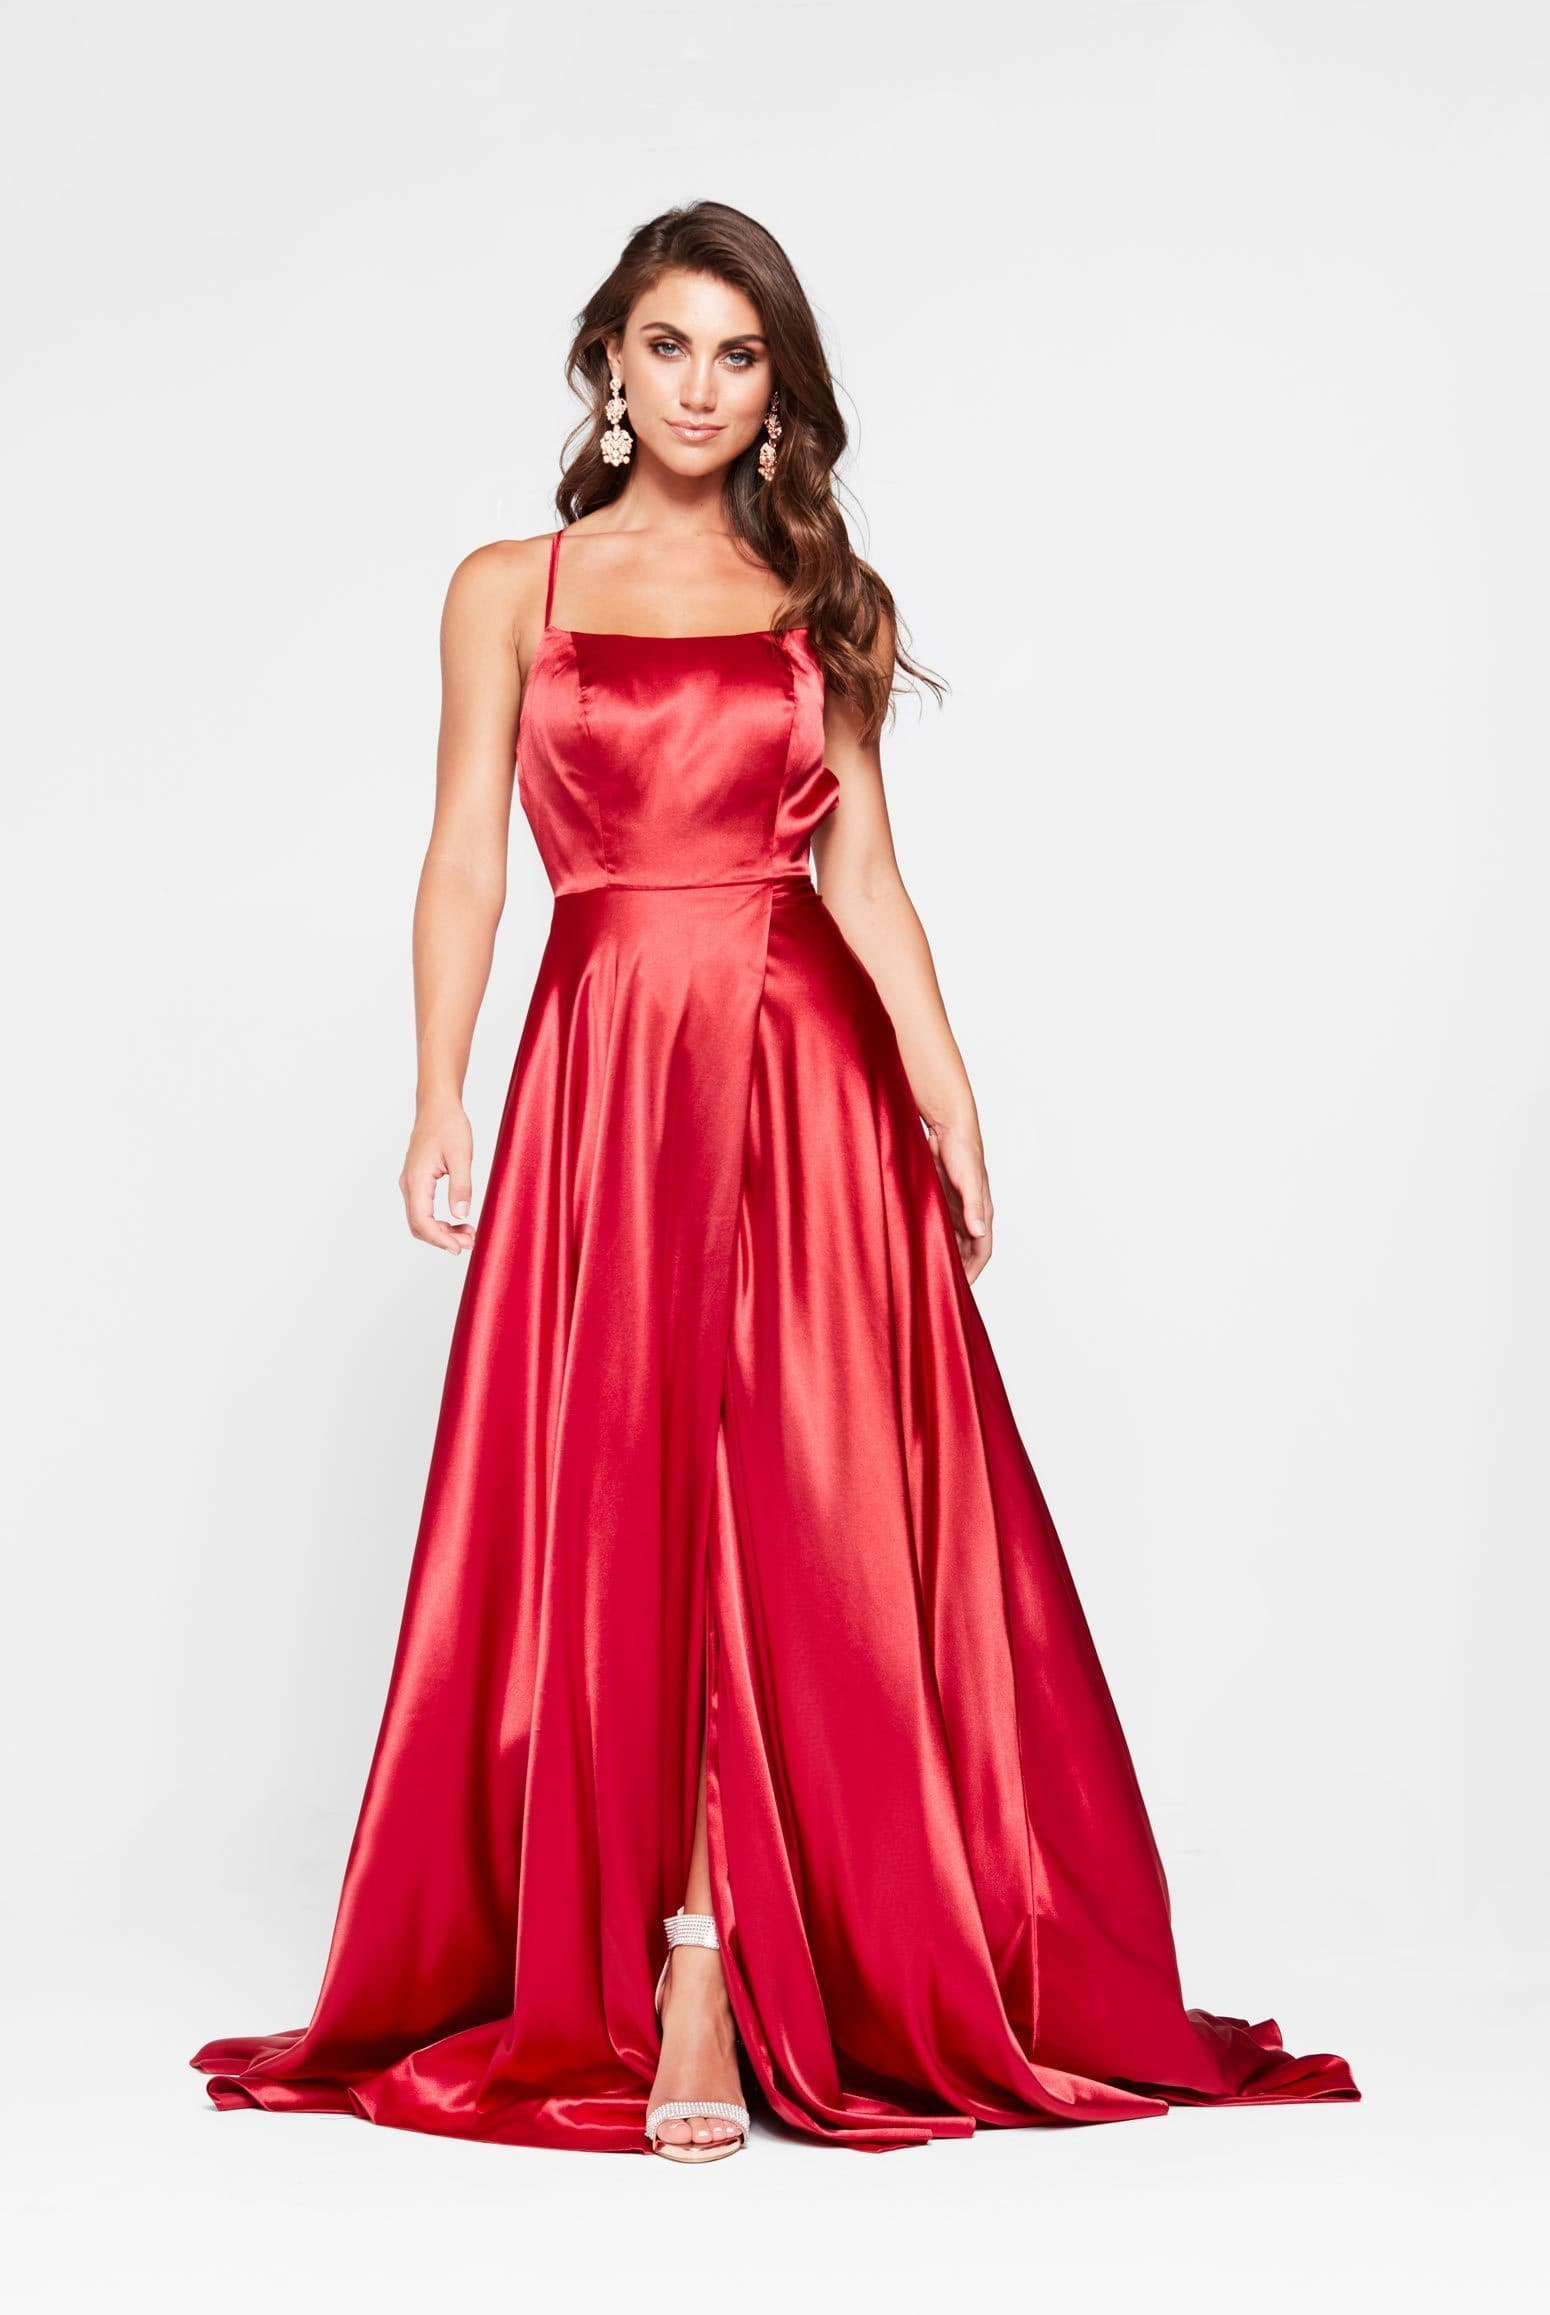 Bianca Formal Dress -Red Satin Side Split Full Length Criss Cross Gown